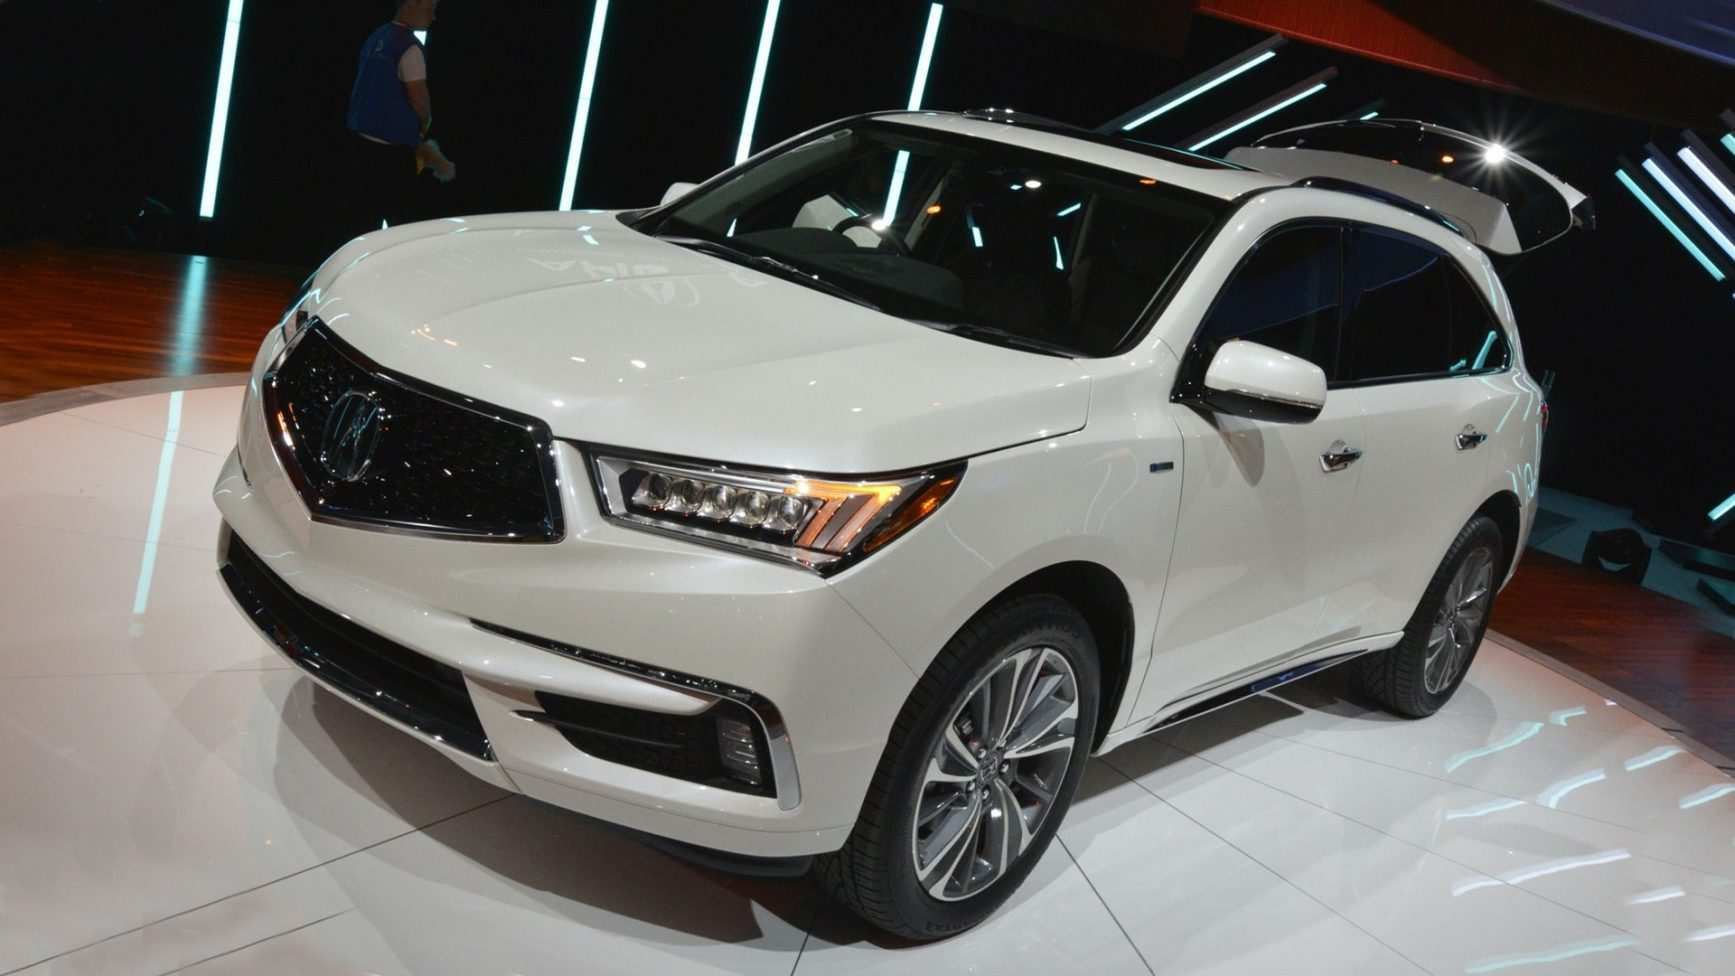 65 All New 2019 Acura Mdx Rumors Spesification